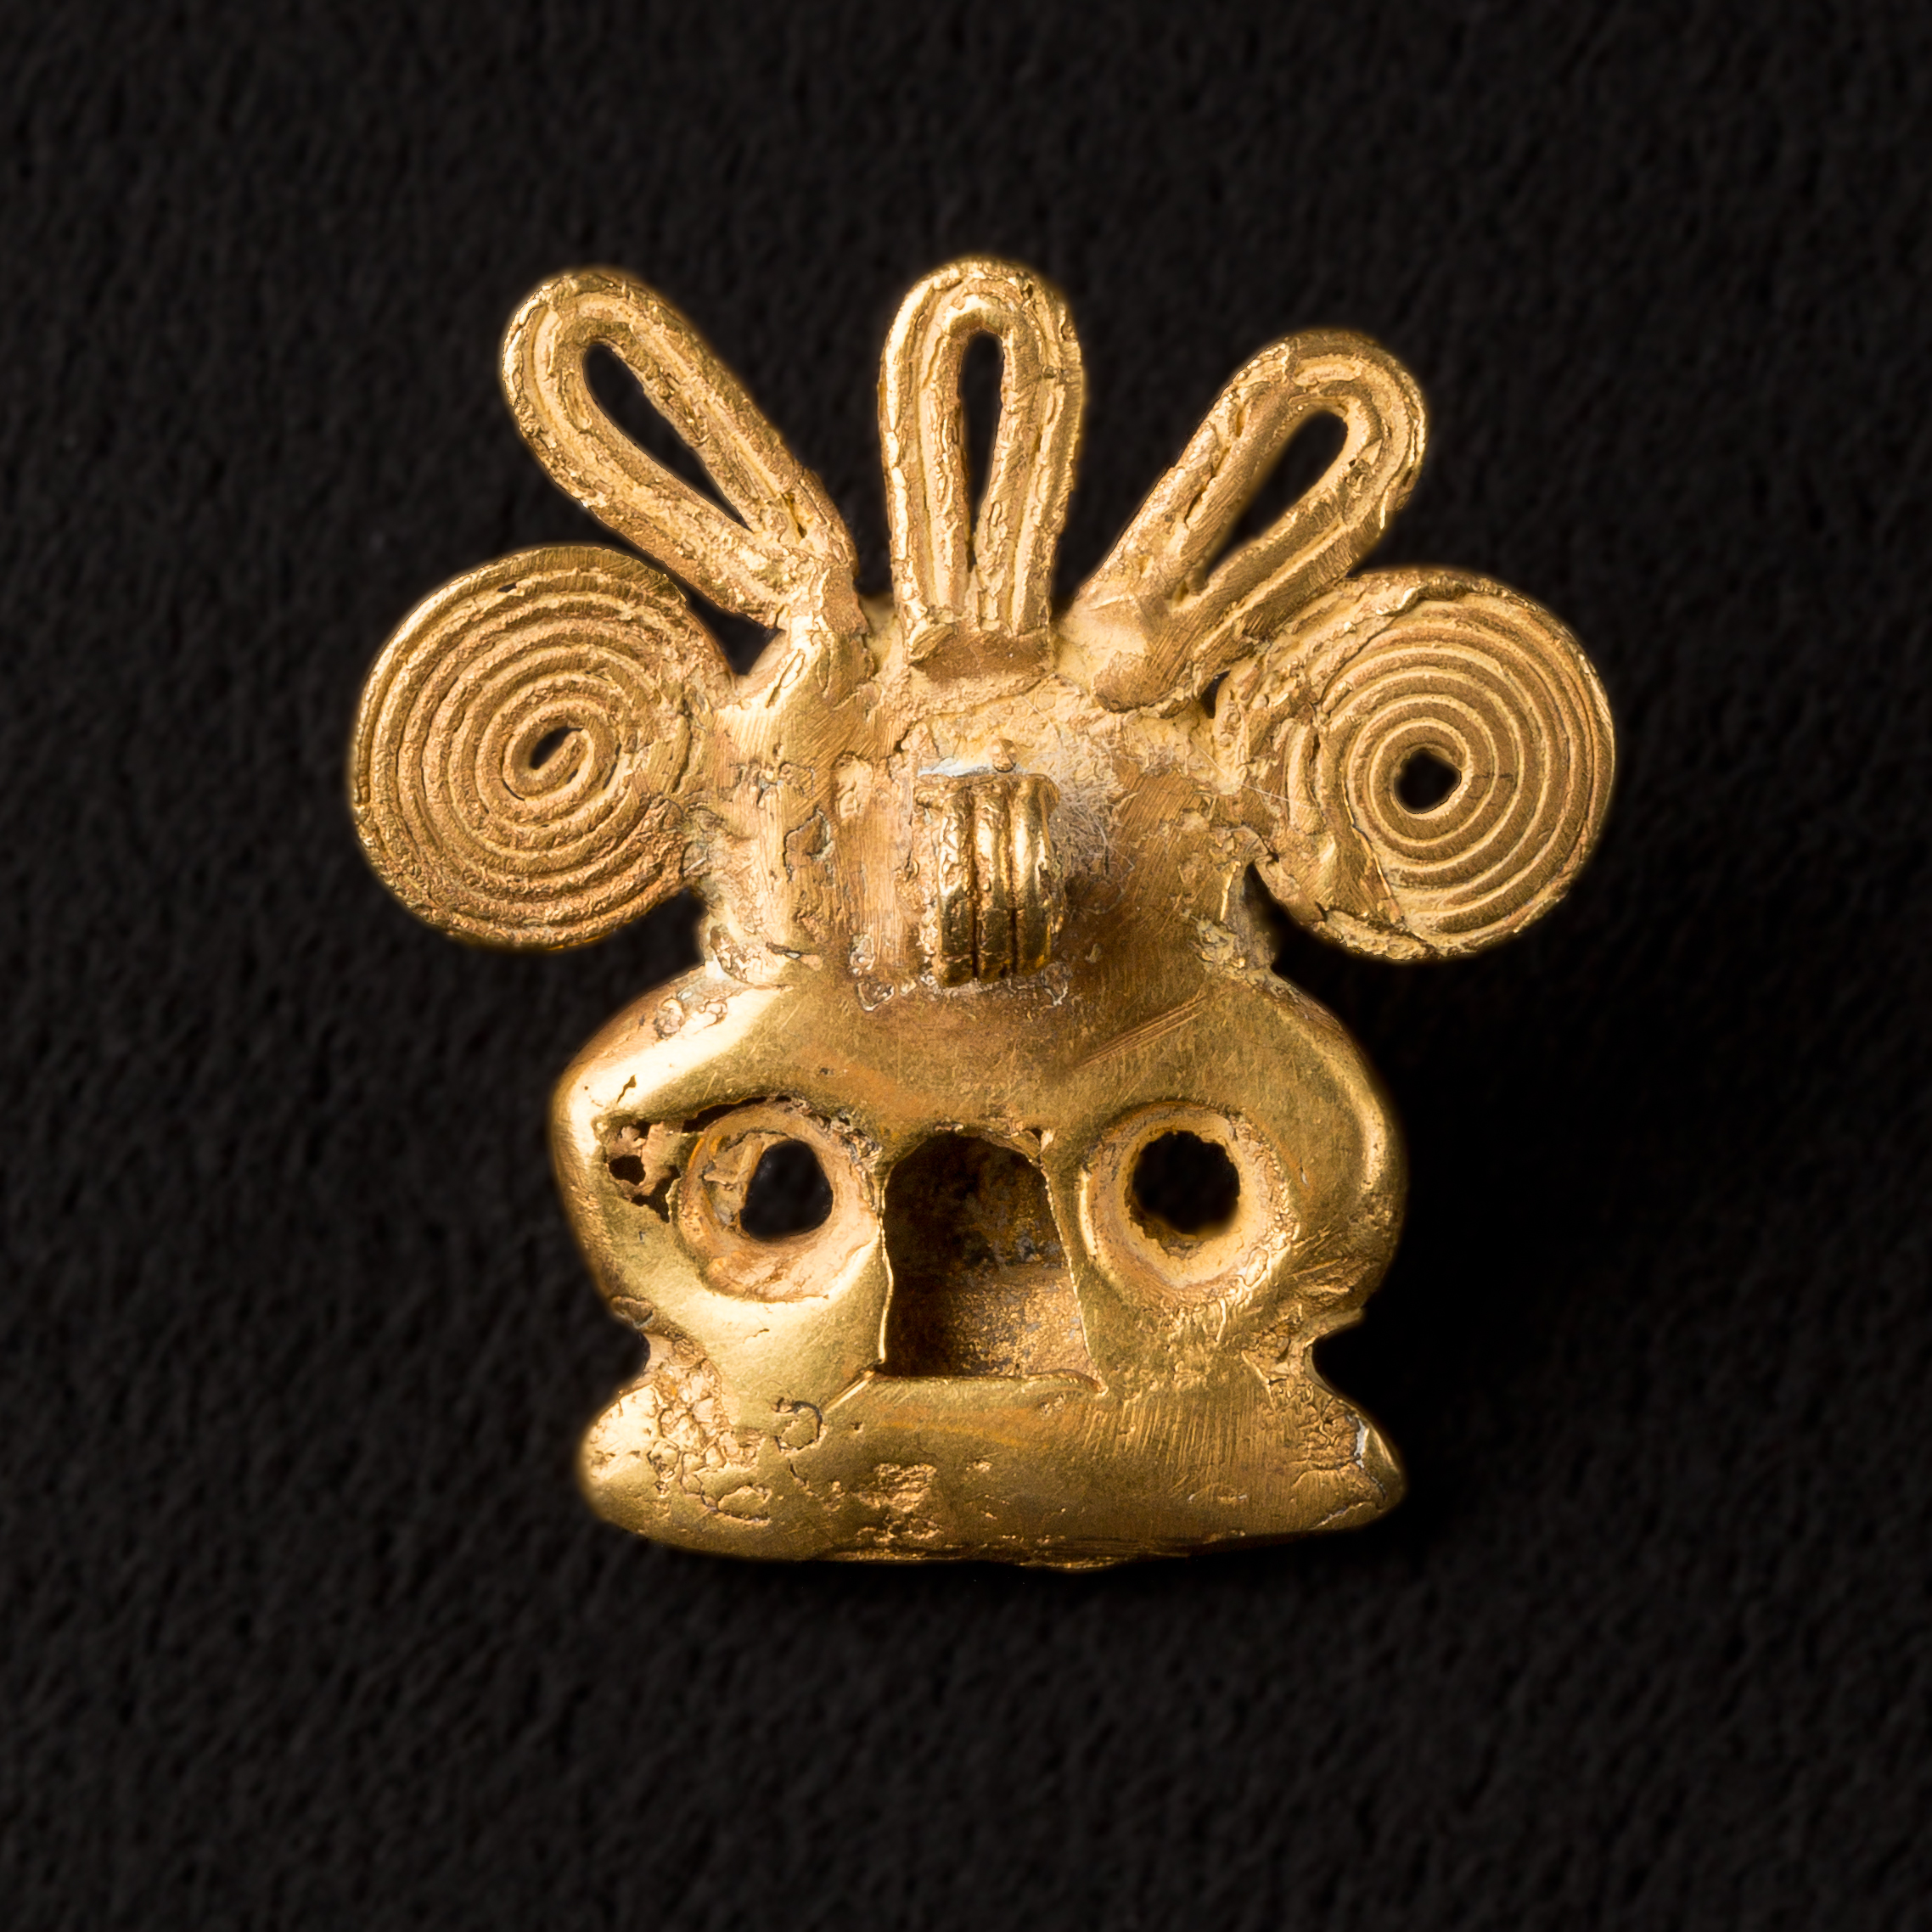 Photo of colombie-tairona-culture-pendentif-aigle-or-cuivre-colombia-tairona-tumbaga-pendant-eagle-headdress-gold-mesoamerica